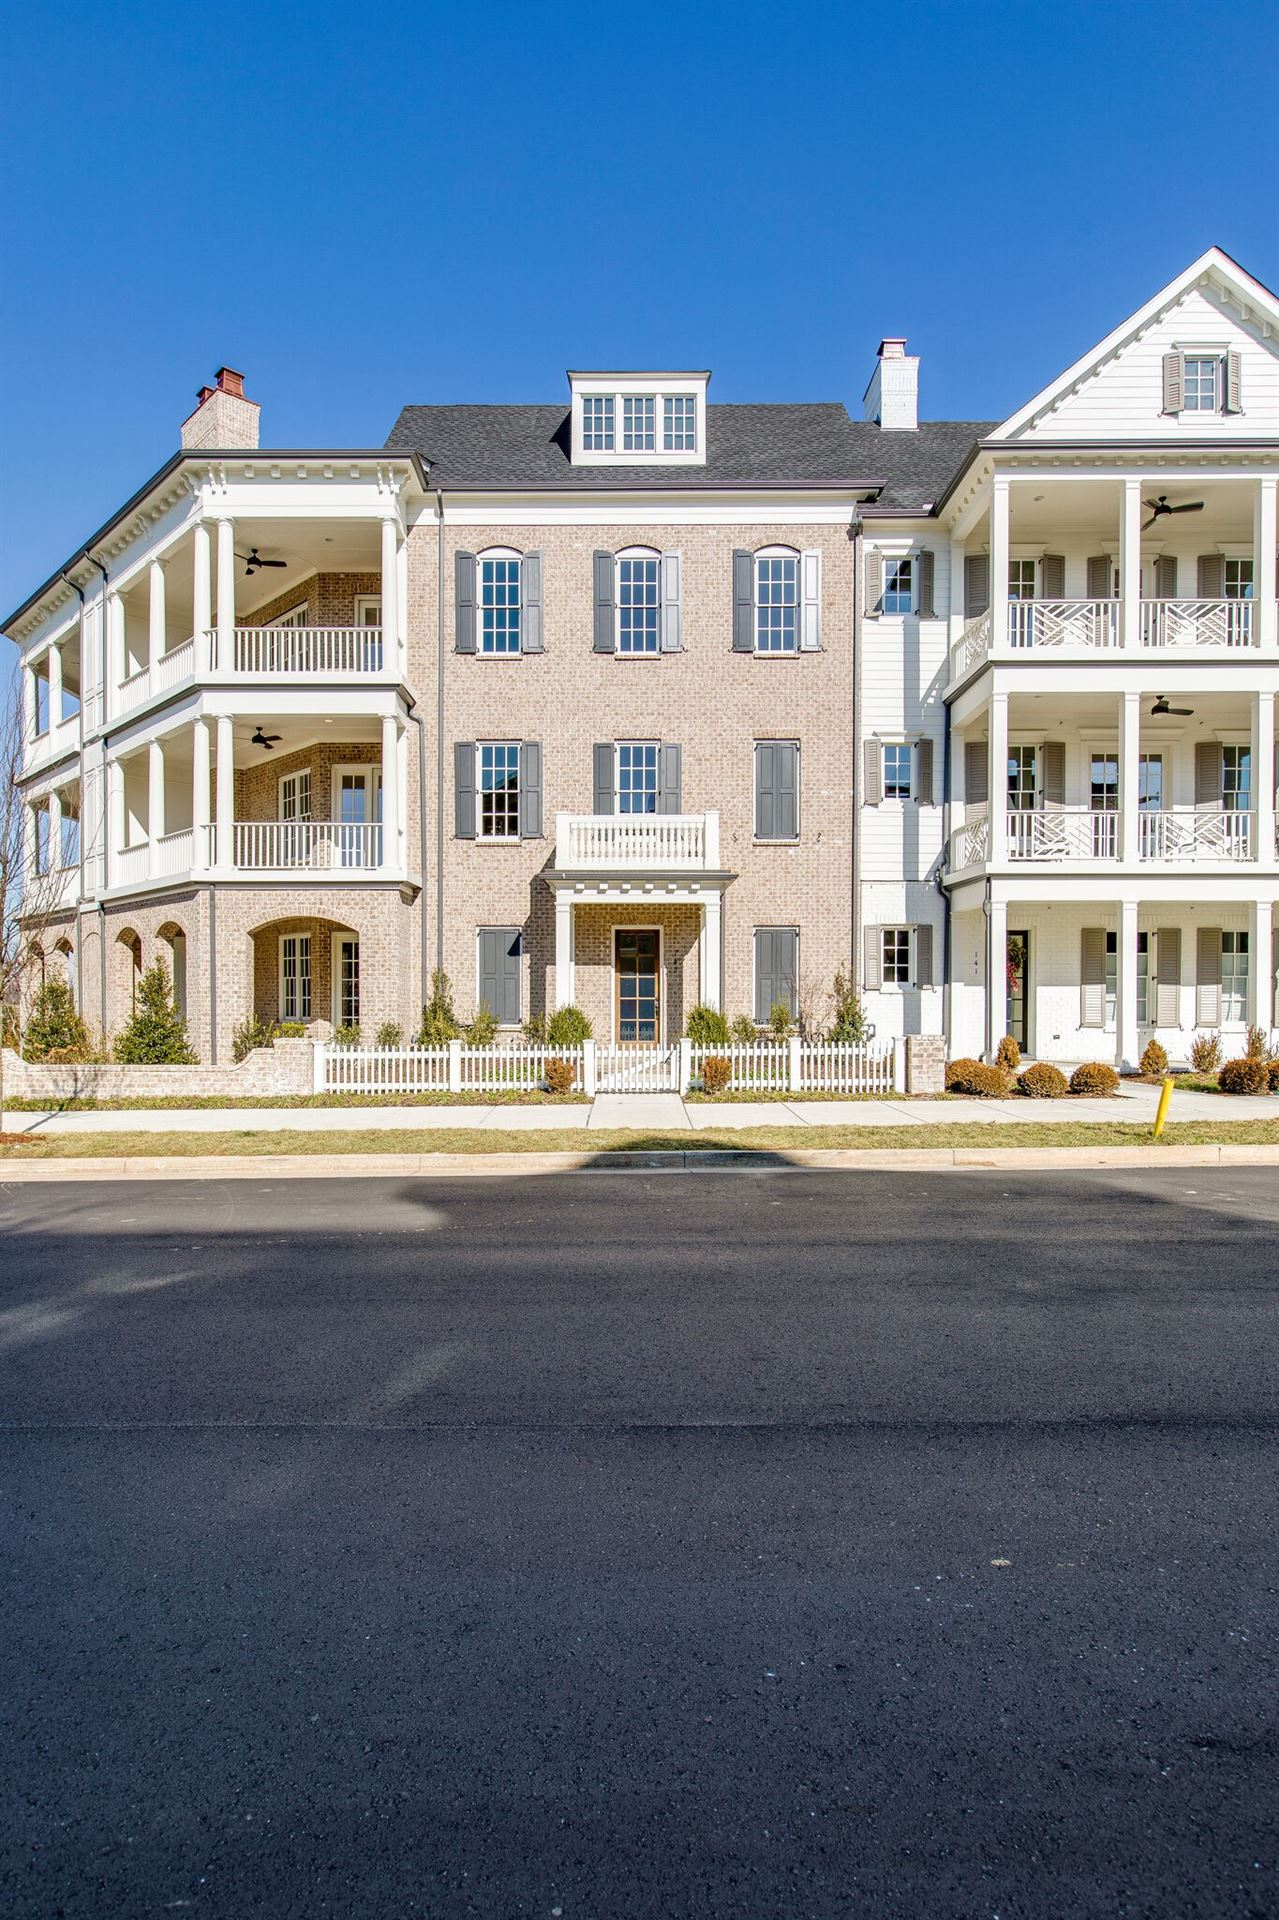 147 Front Street, WH # 4066, Franklin, TN 37064 - MLS#: 2205780